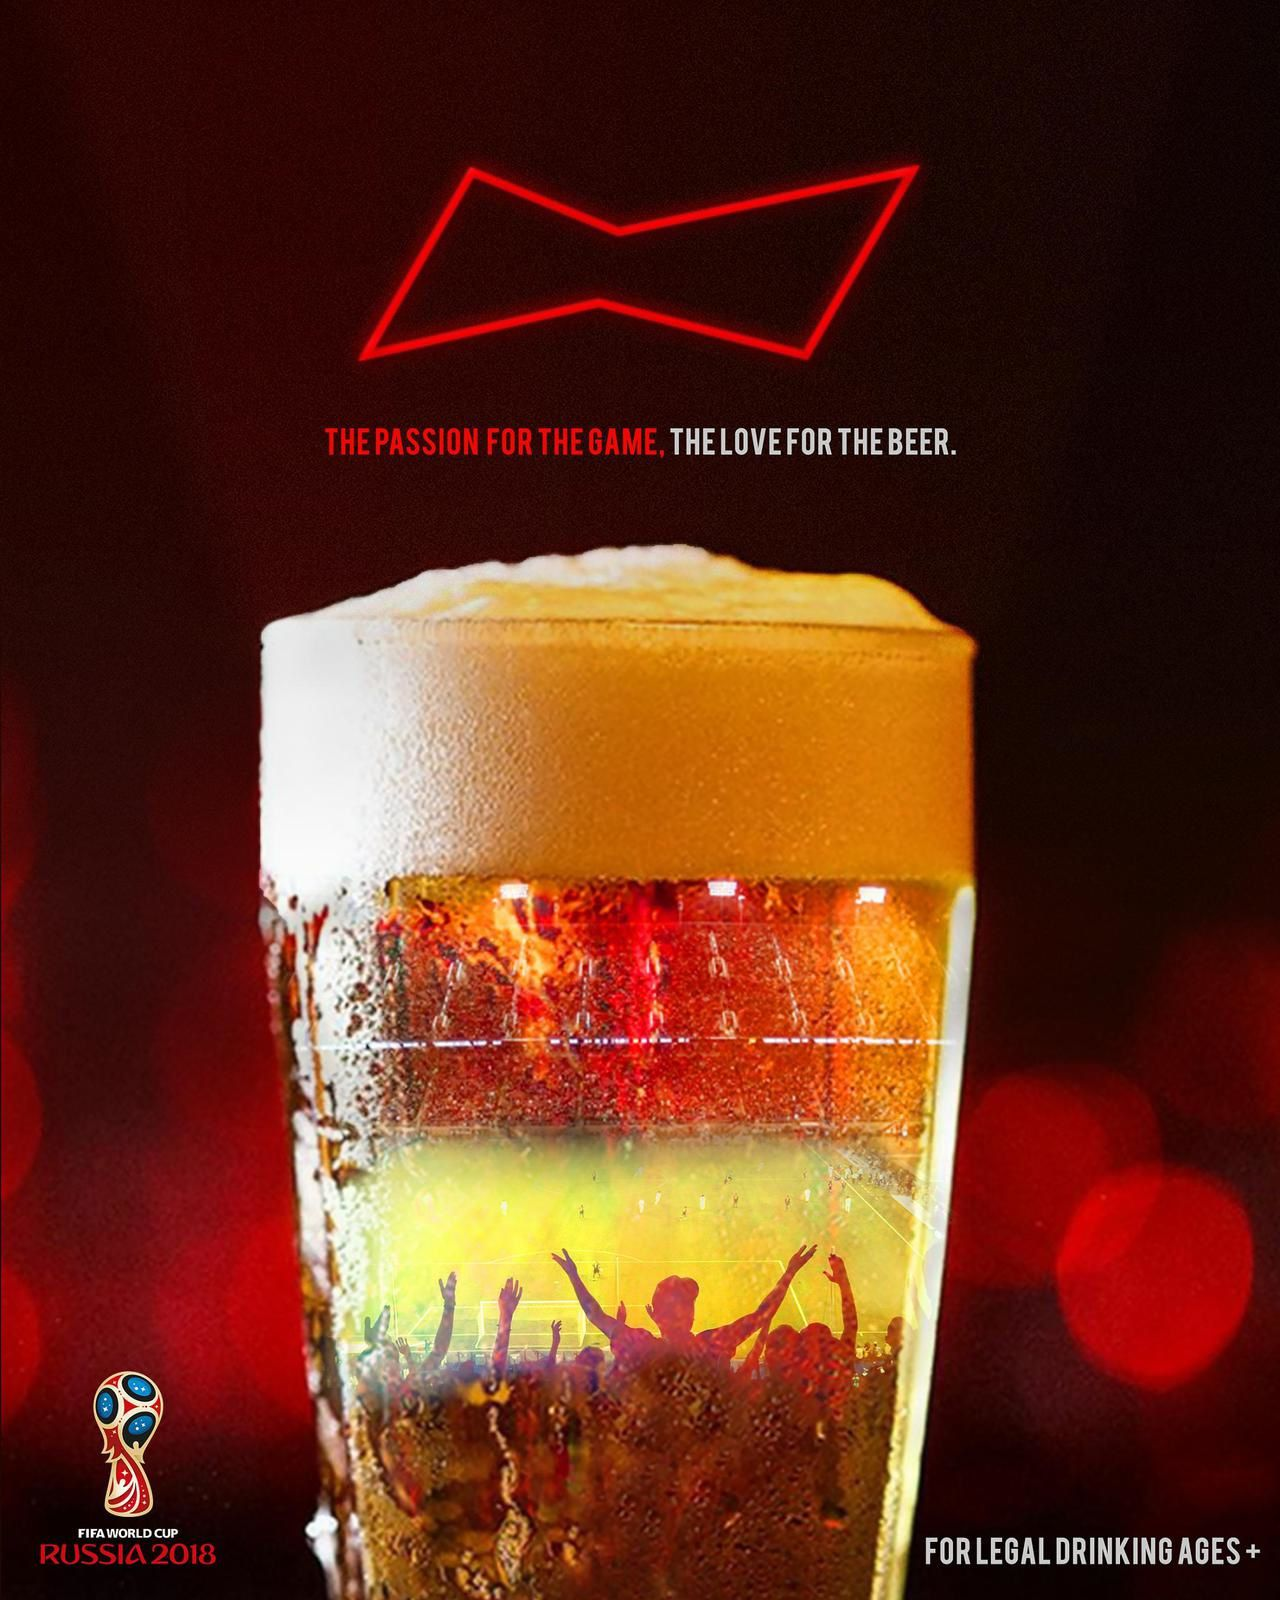 """The Passion For The Game, The Love For The Beer"" - Budweiser (bière) I Création : Kayode Aliyu (juin 2018)"